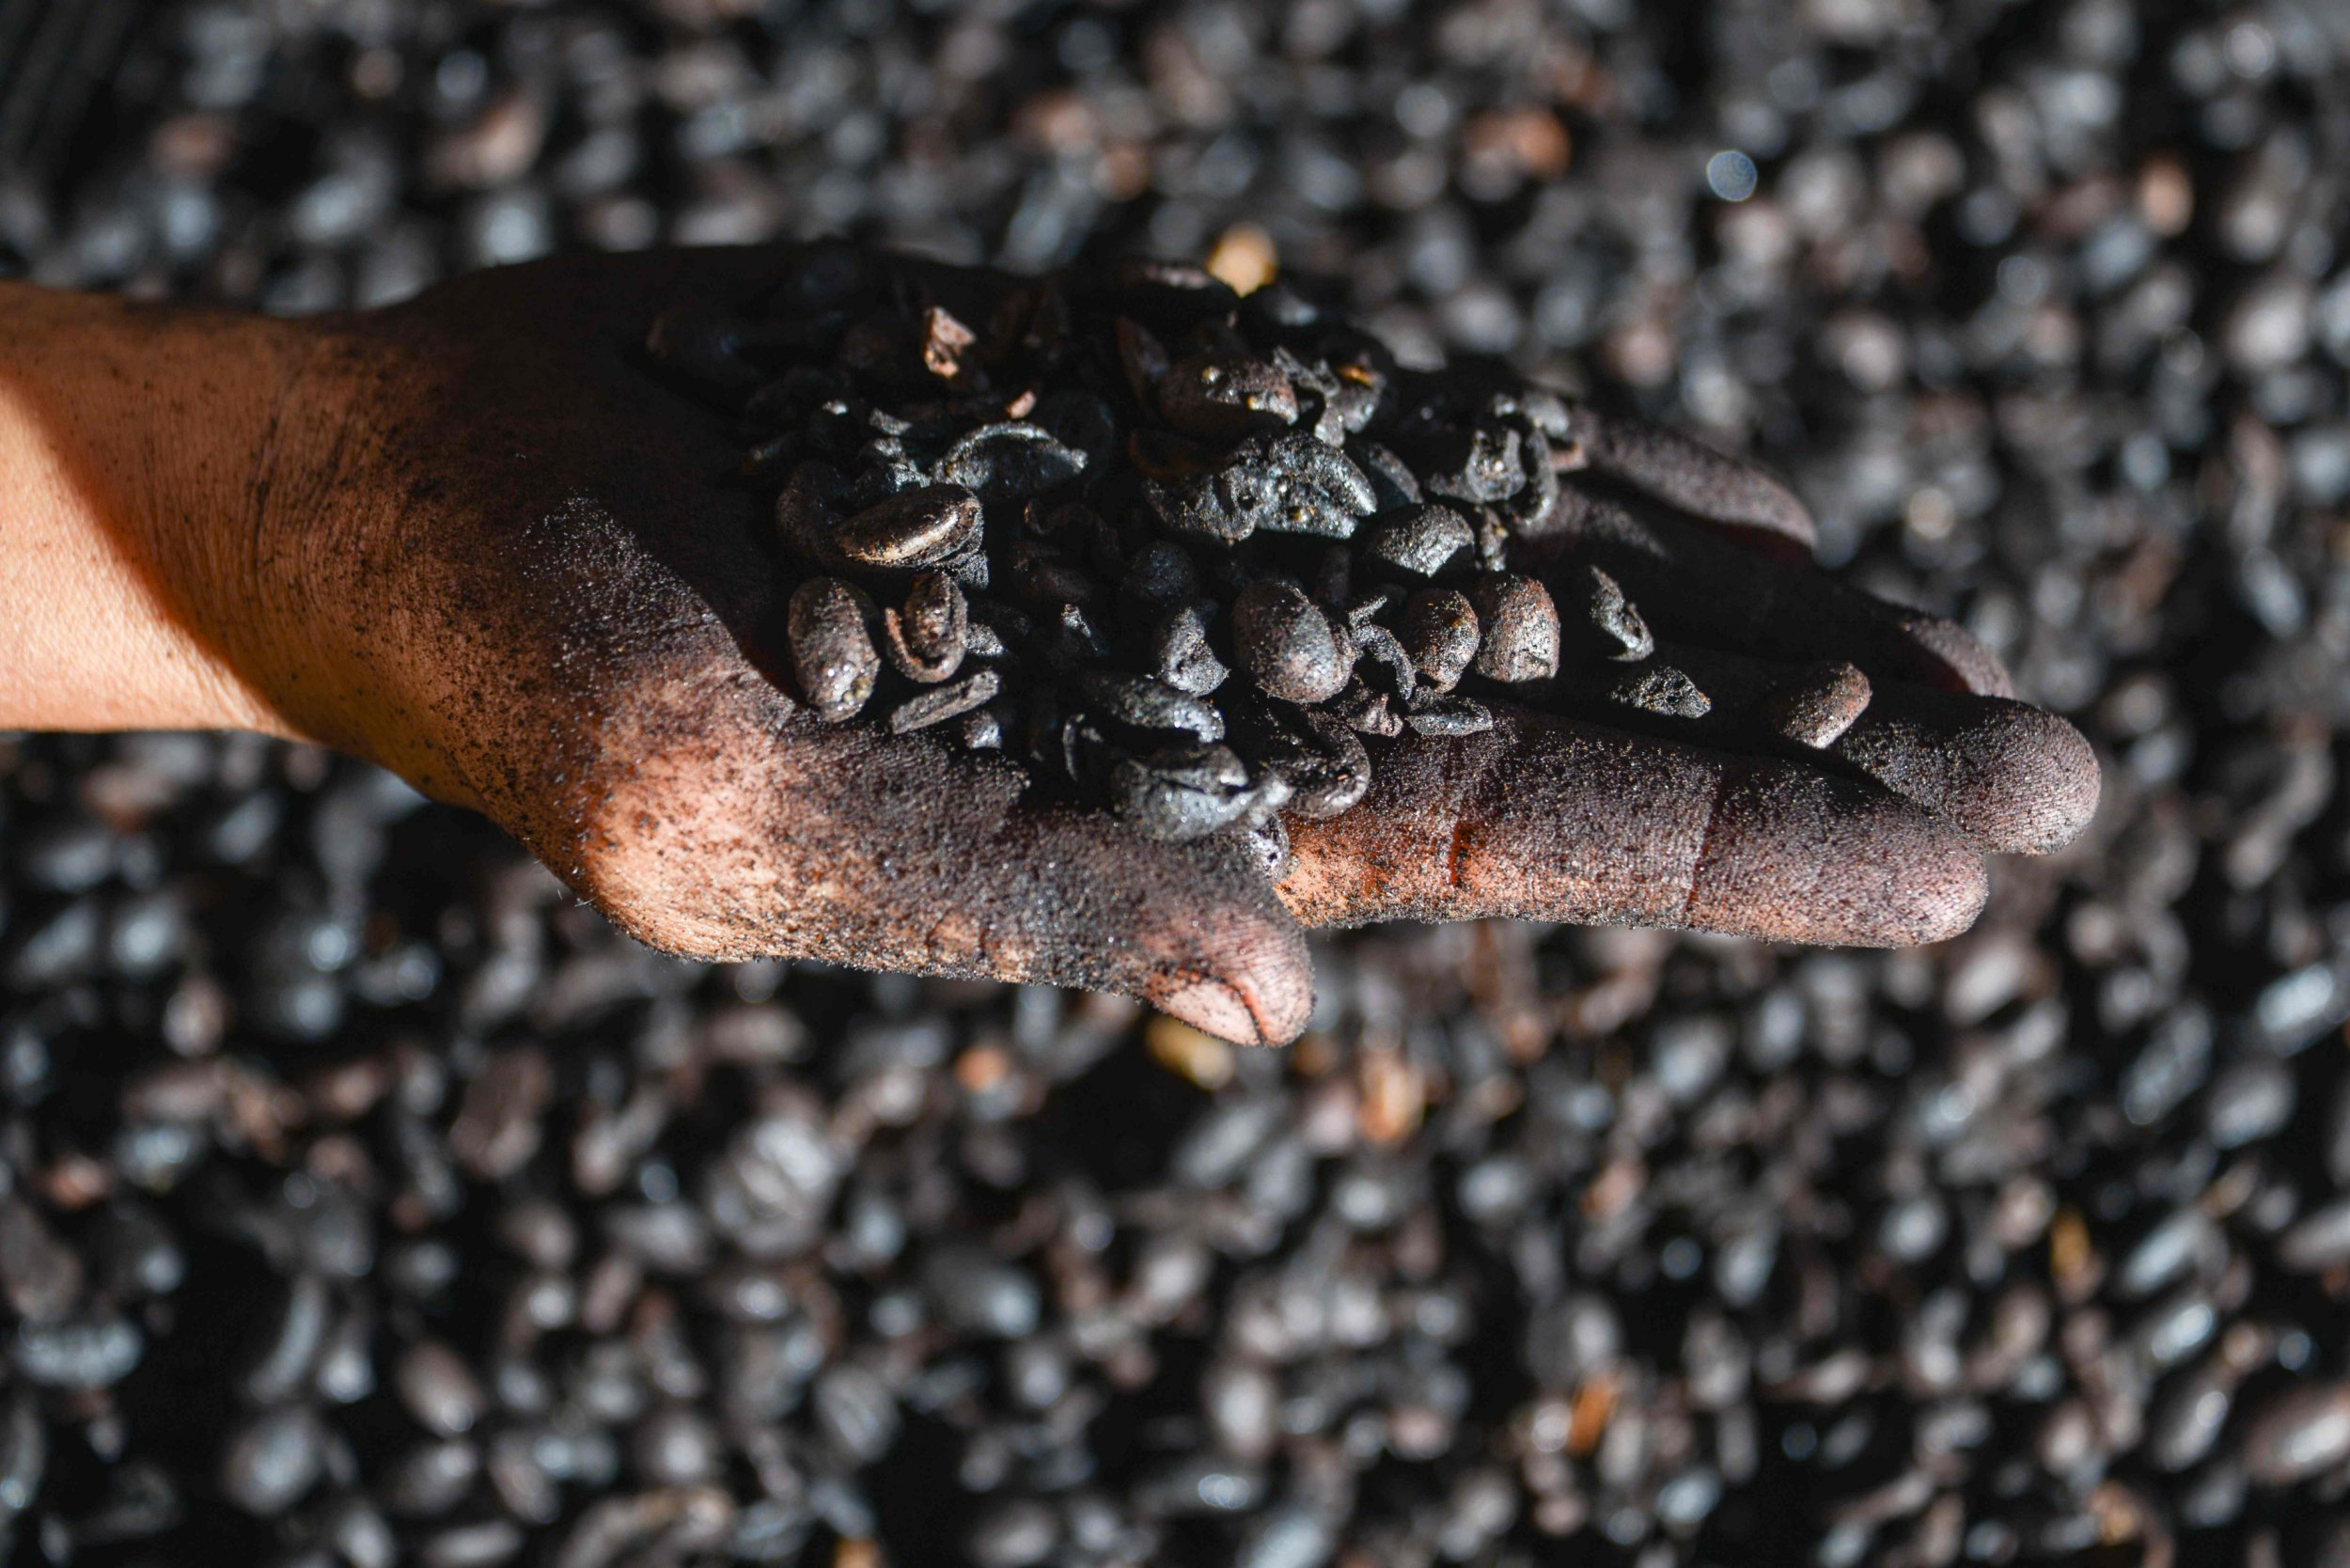 The Swiss government said coffee beans aren't essential for health (Picture: Chaideer Mahyuddin/AFP/Getty Images)